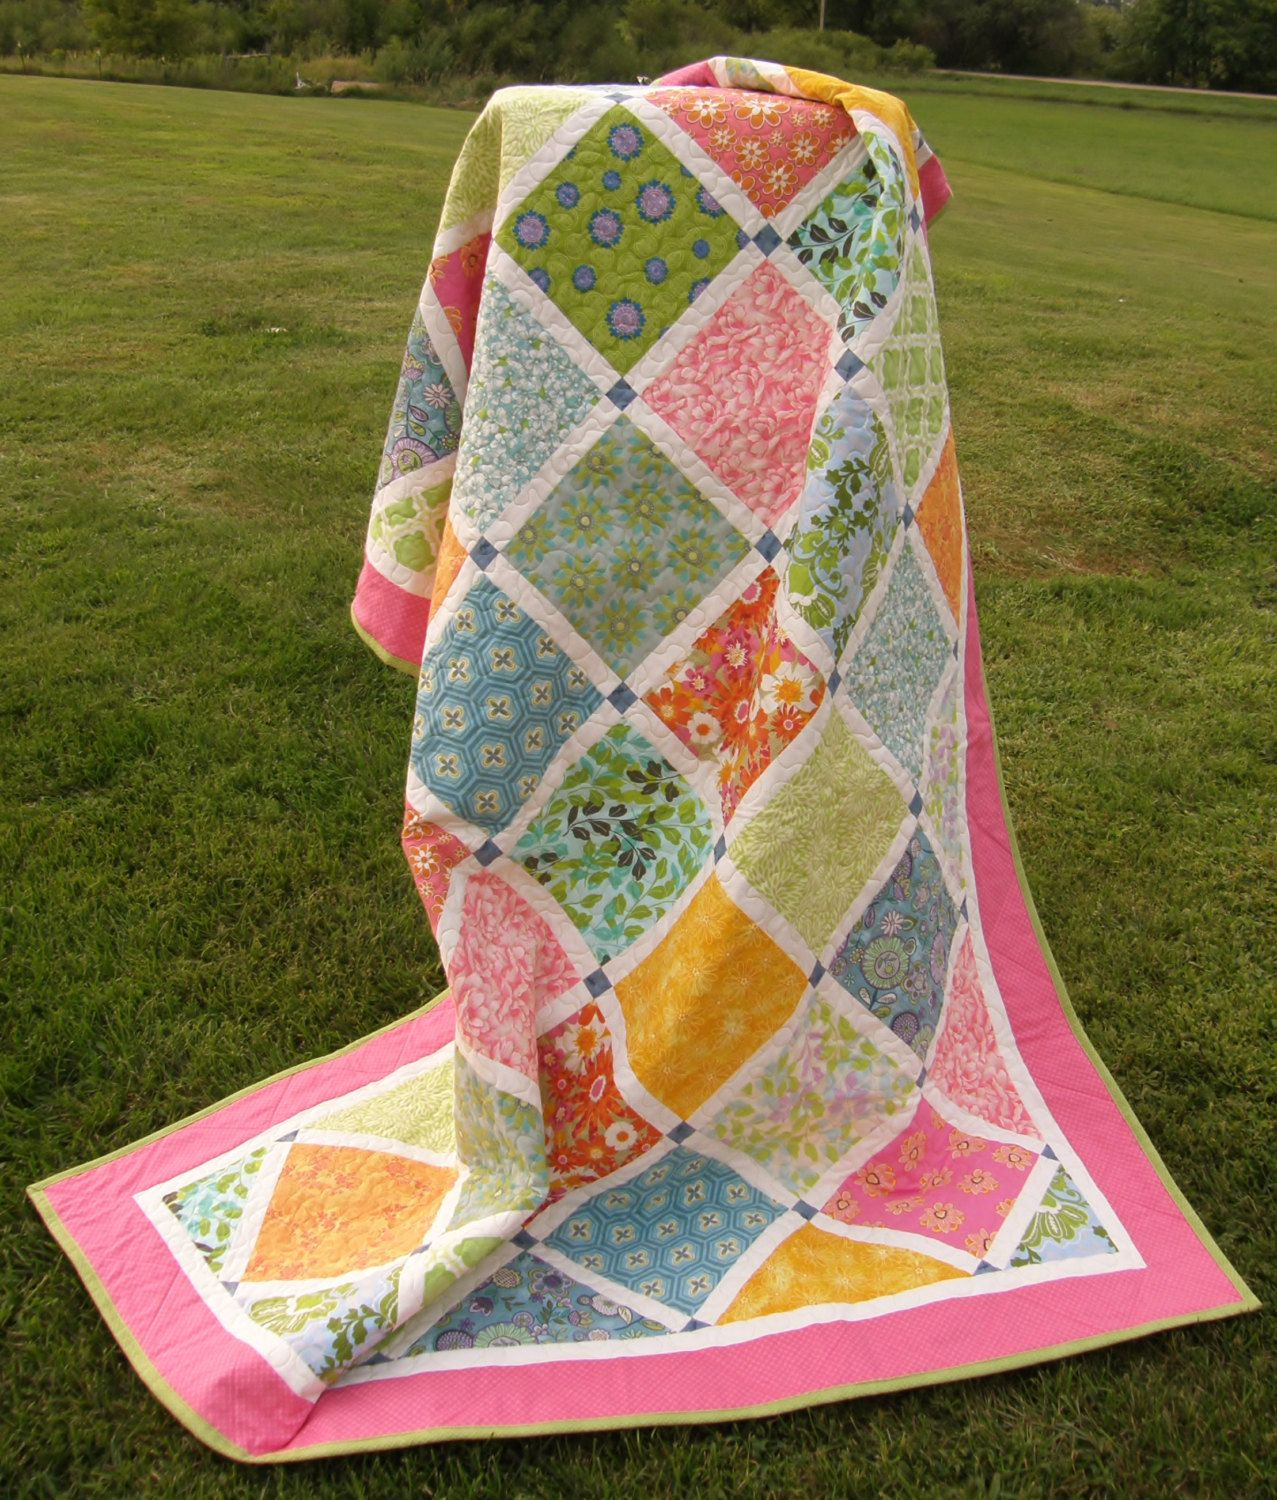 "FREE SHIPPING**Lattice Lap Size Quilt. Floral Print. Handmade Quilt, 67"" x 56"". by TeresasSewingCorner on Etsy"